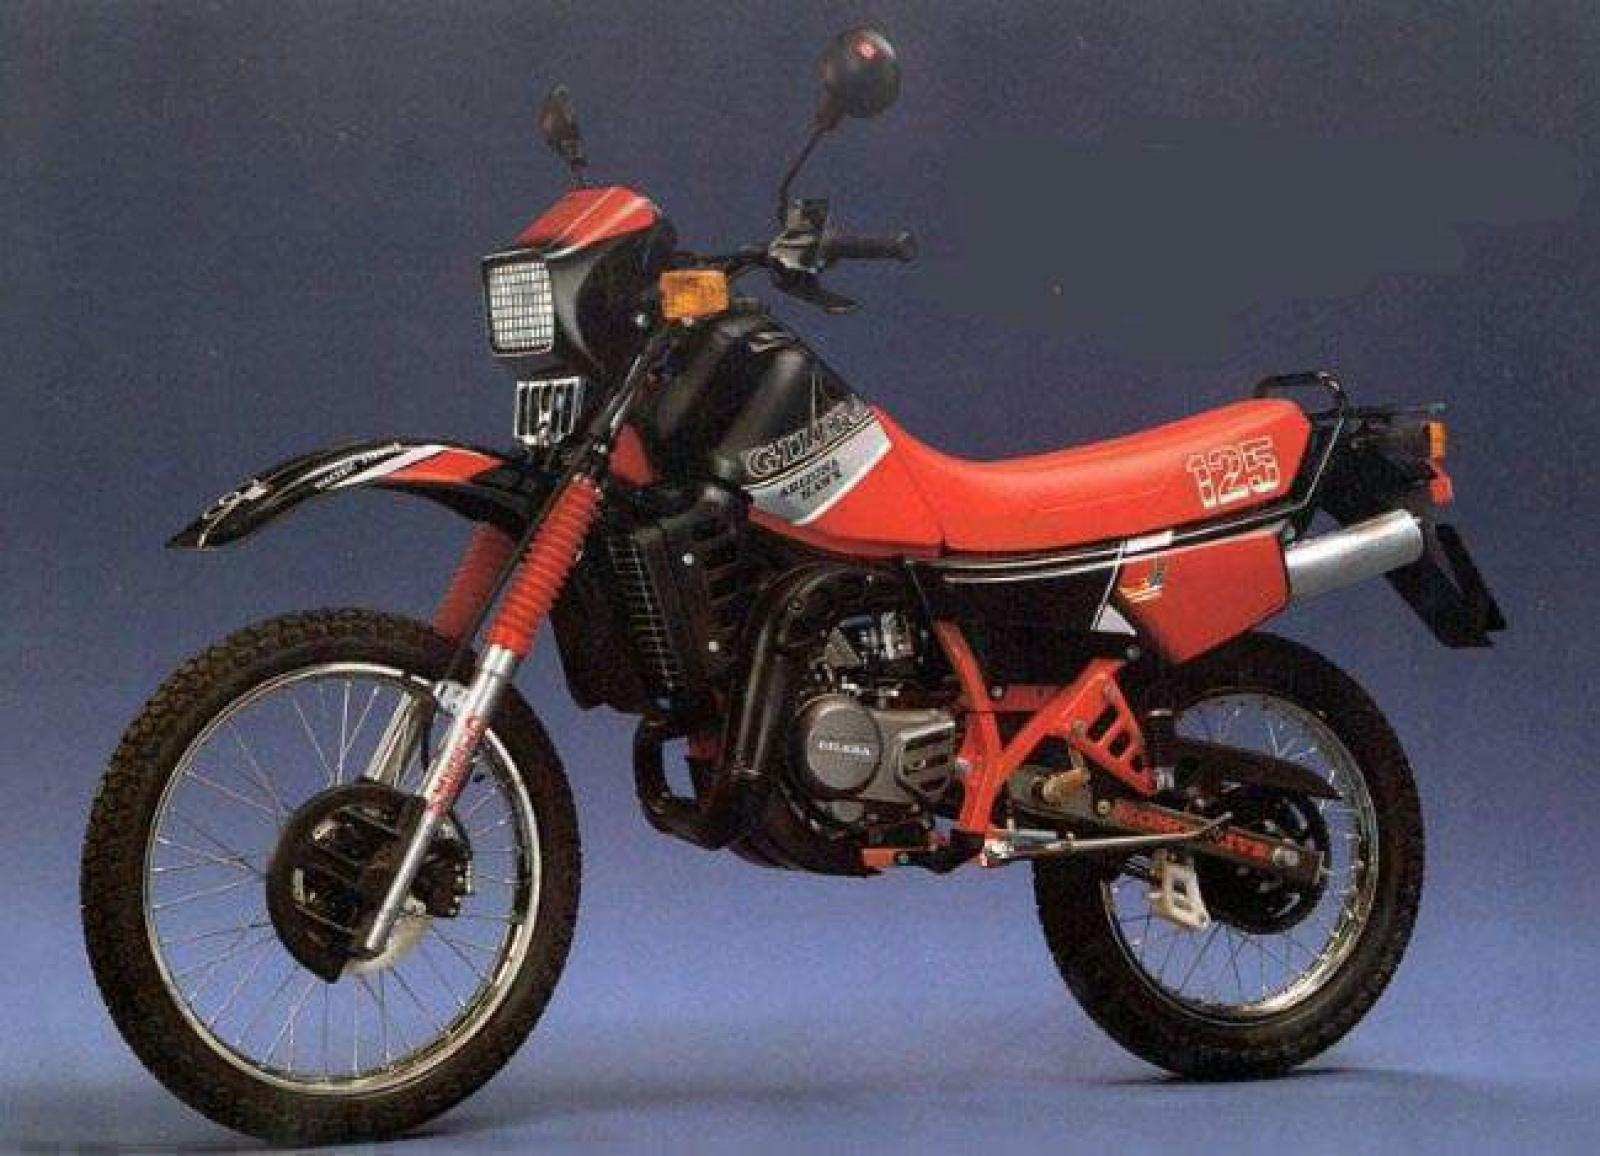 Gilera RX 200 Arizona 1986 images #72818